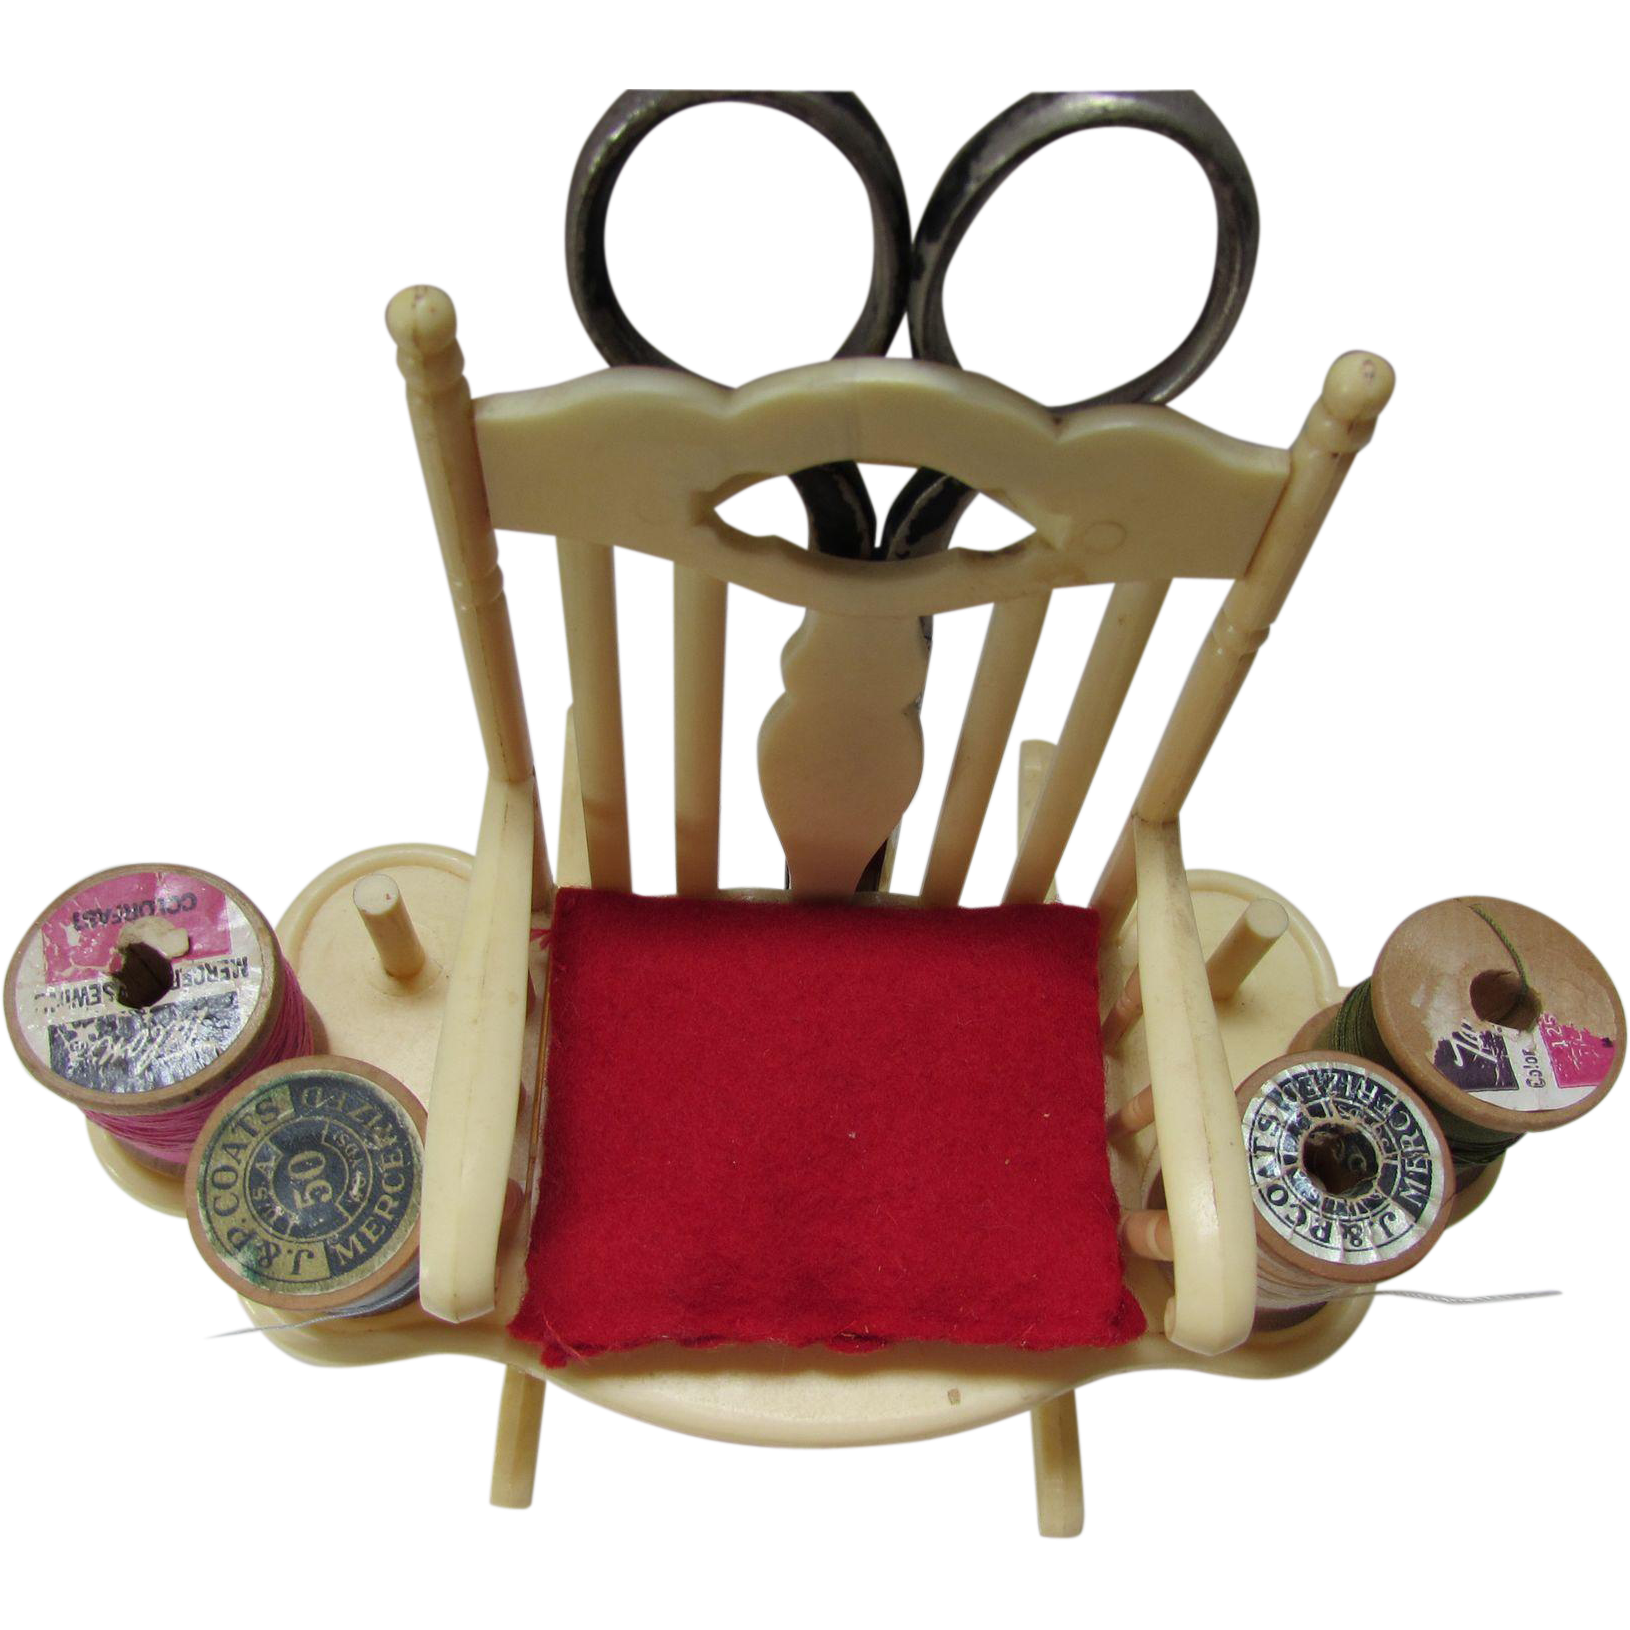 Vintage Pincushion Thread Holder Form of Rocking Chair in Butter Yellow Plastic with Red Seat